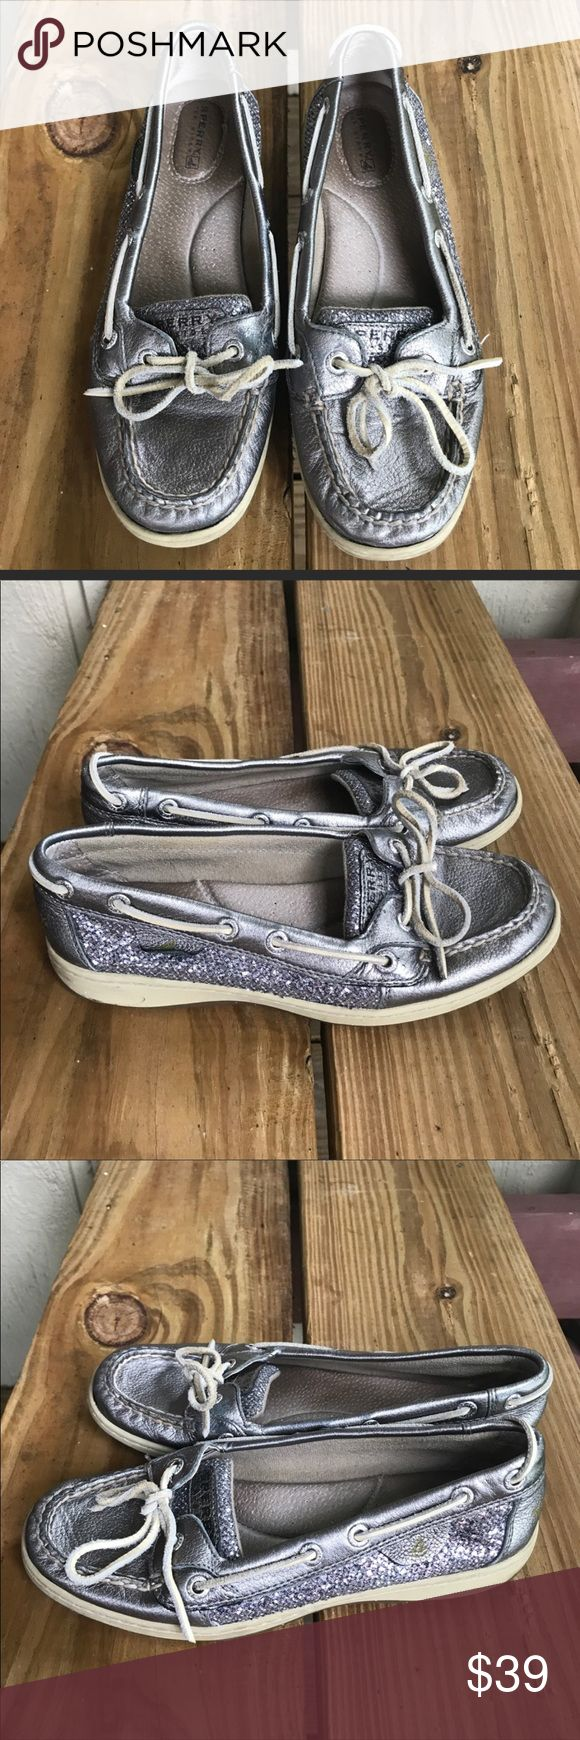 Sperry Top-Sider silver sparkly shoes 7.5 Sperry Top-Sider silver sparkly boat shoes. 7.5M. GUC. Sperry Top-Sider Shoes Flats & Loafers